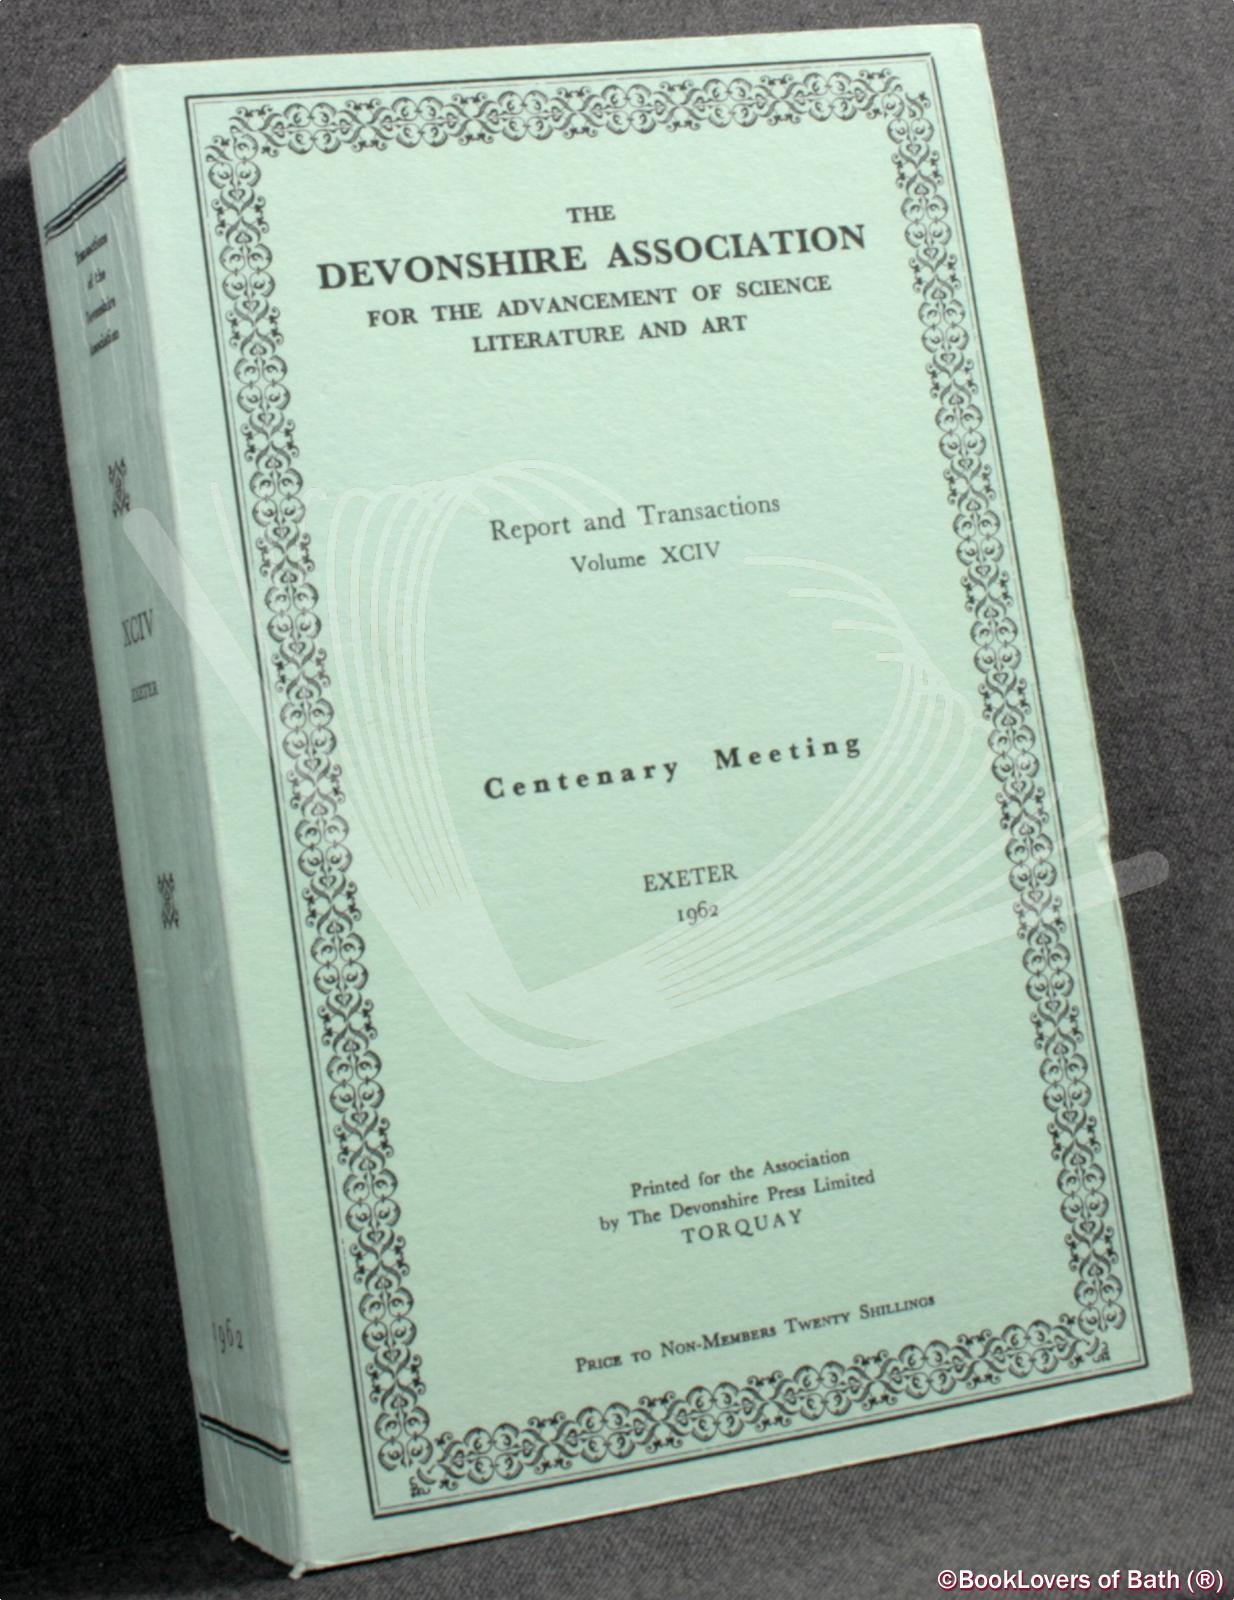 The Devonshire Association for the Advancement of Science, Literature and Art: Report and Transactions Volume XCIV Exeter1962 - Anon.